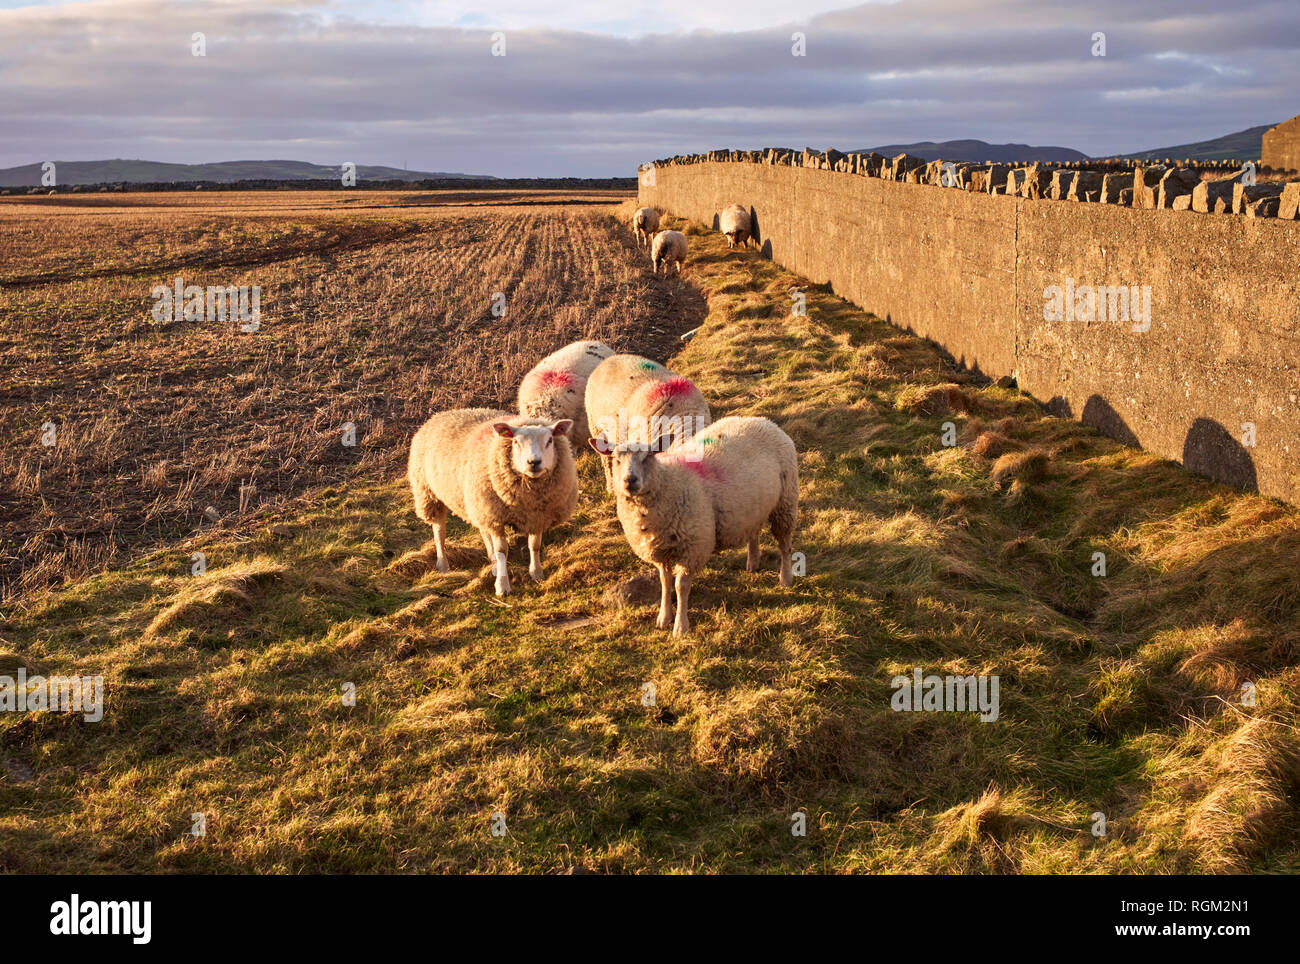 Curious sheep grazing near Scarlett, Castletown, Isle of Man in late winter afternoon sunshire - Stock Image